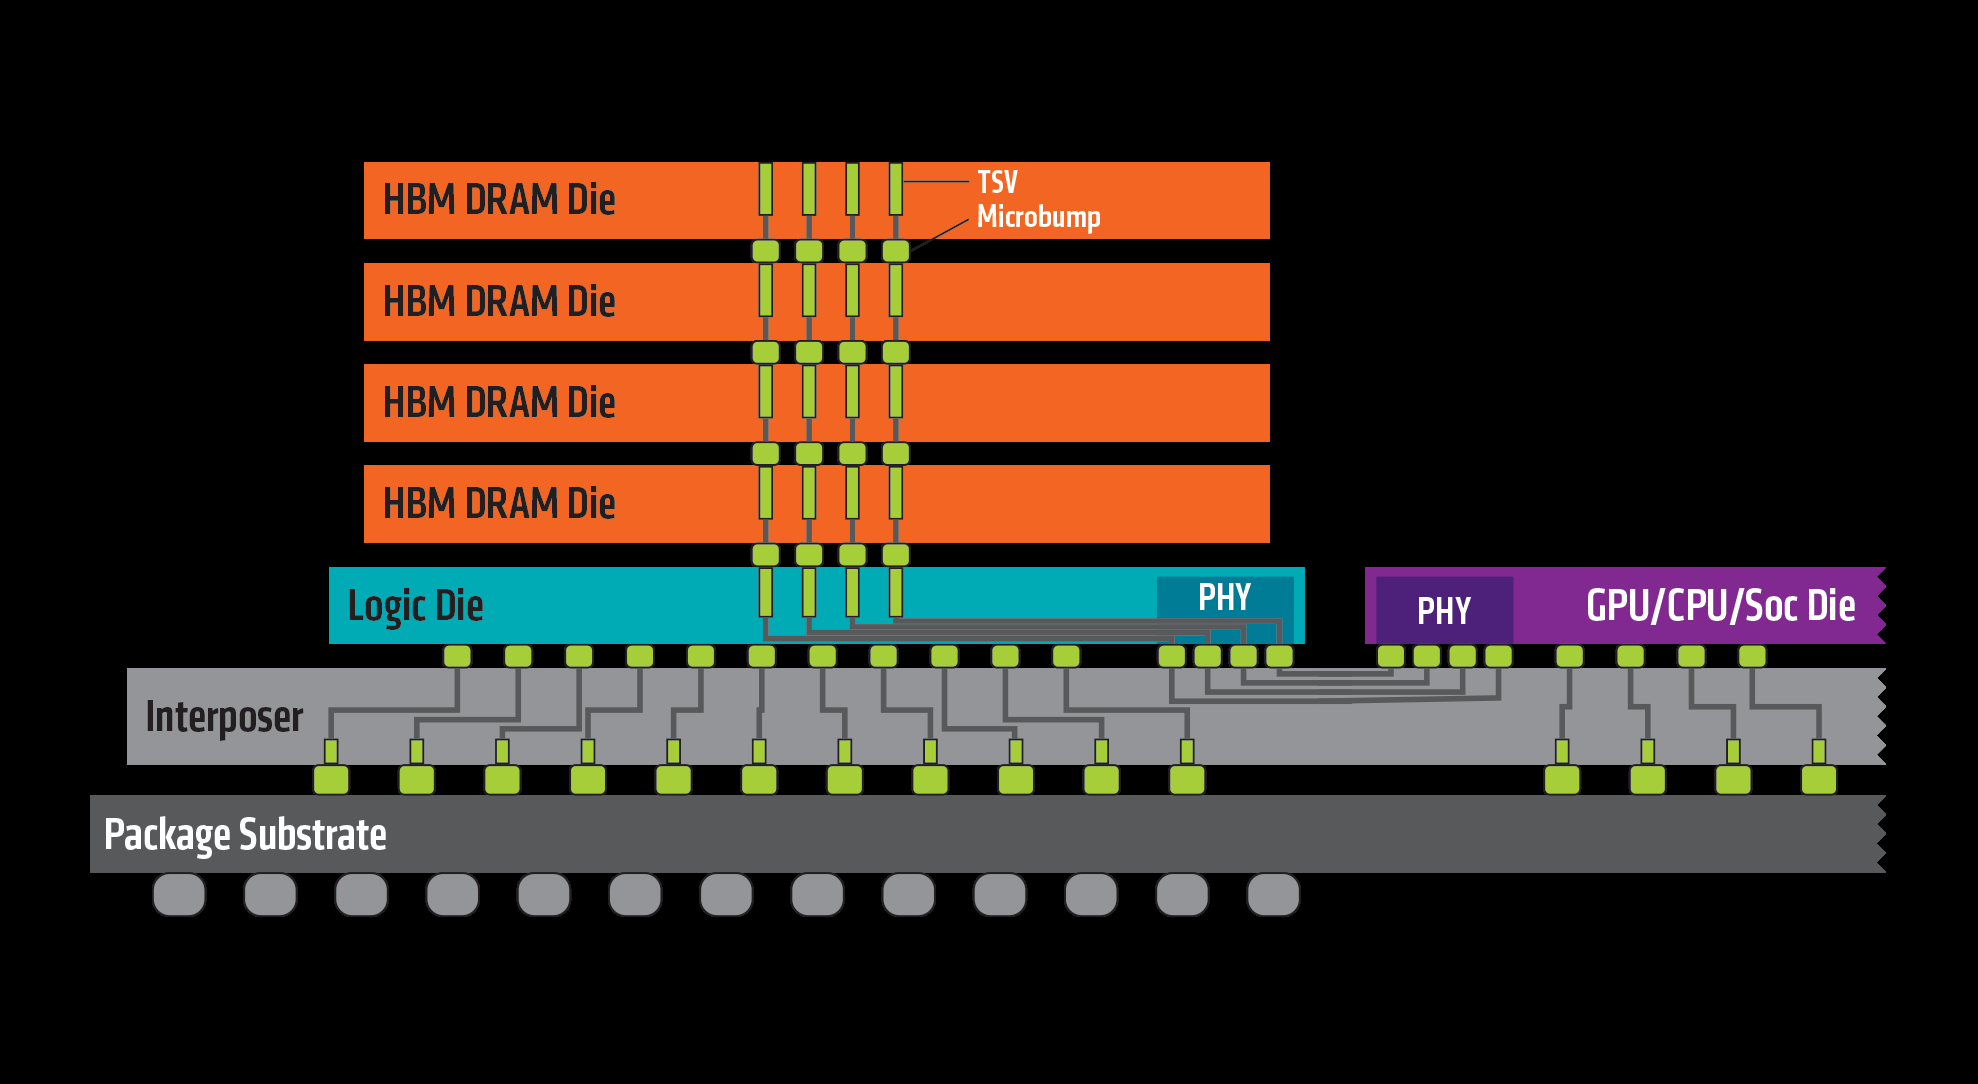 Amd Sheds Light On High Bandwidth Memory In New Radeons